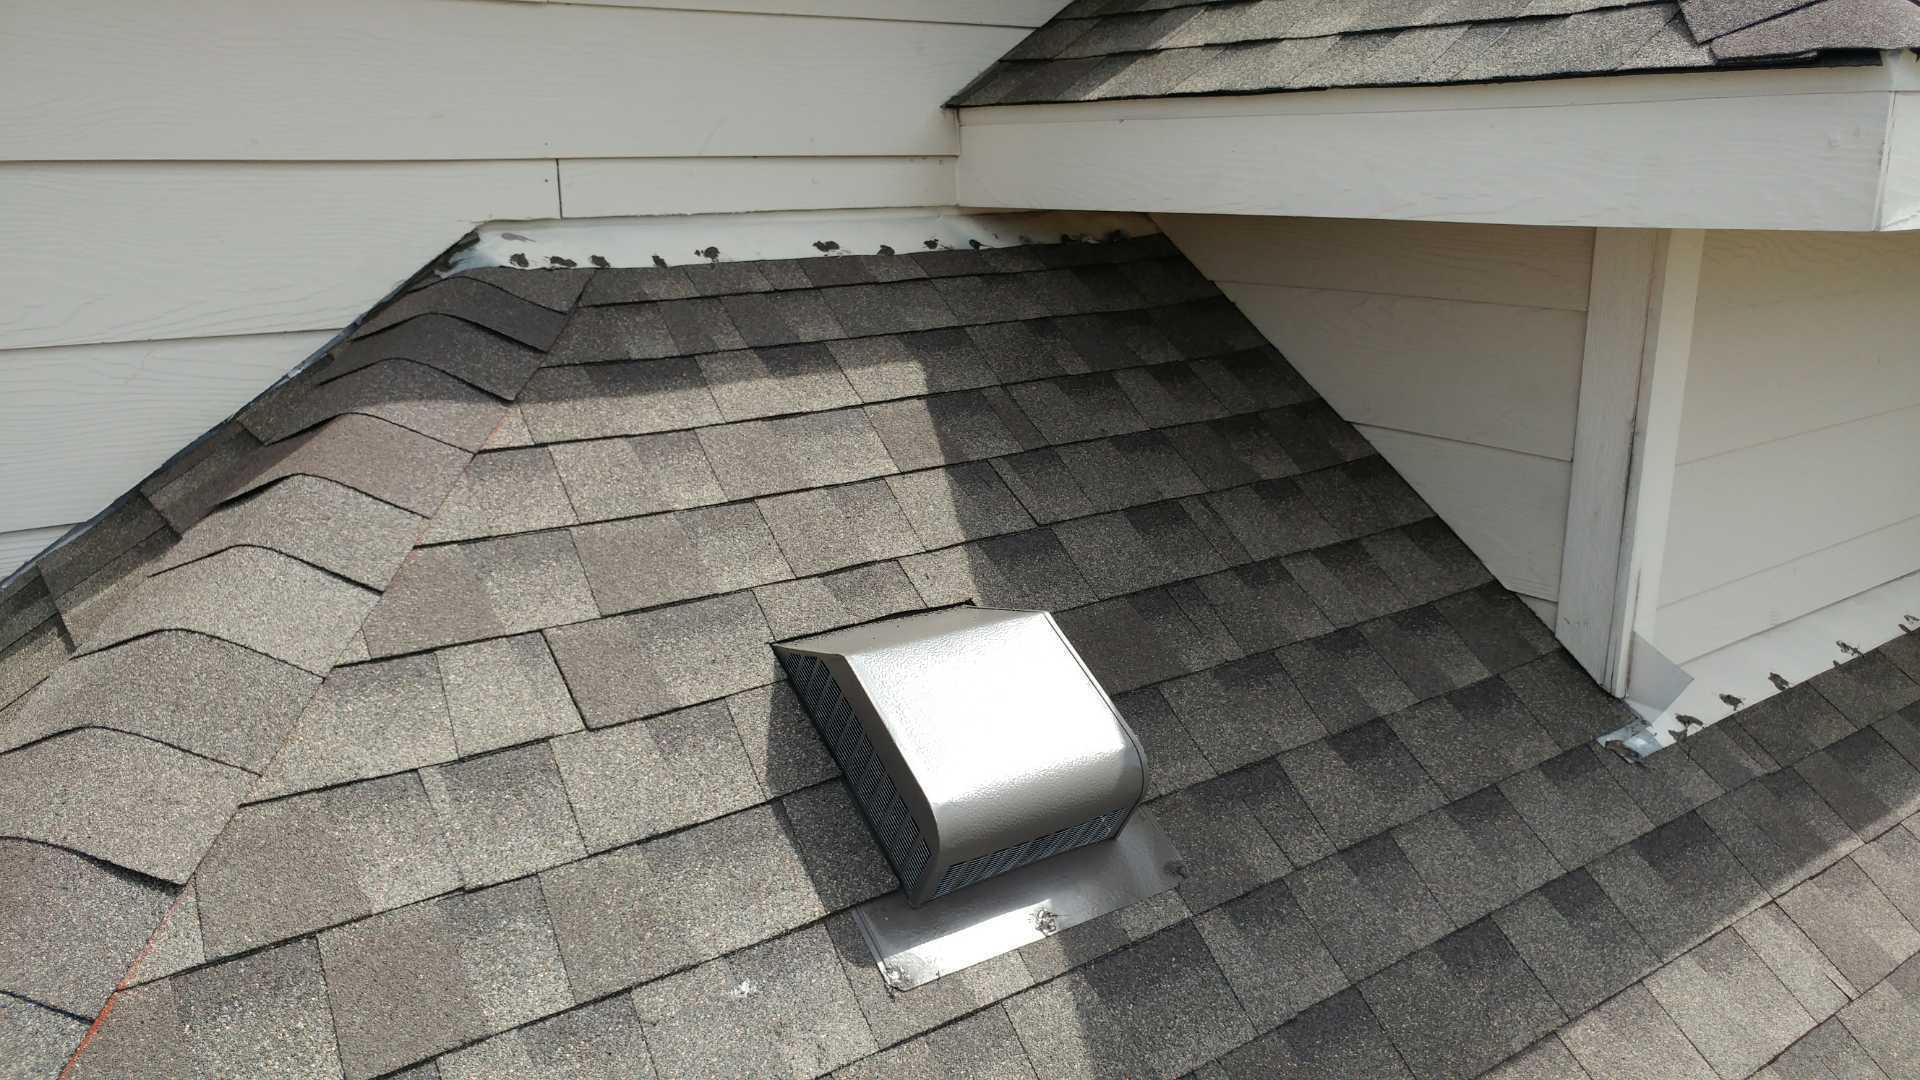 Elevated-Roofing-–-Roof-Replacement-Repair-Frisco-Texas-71